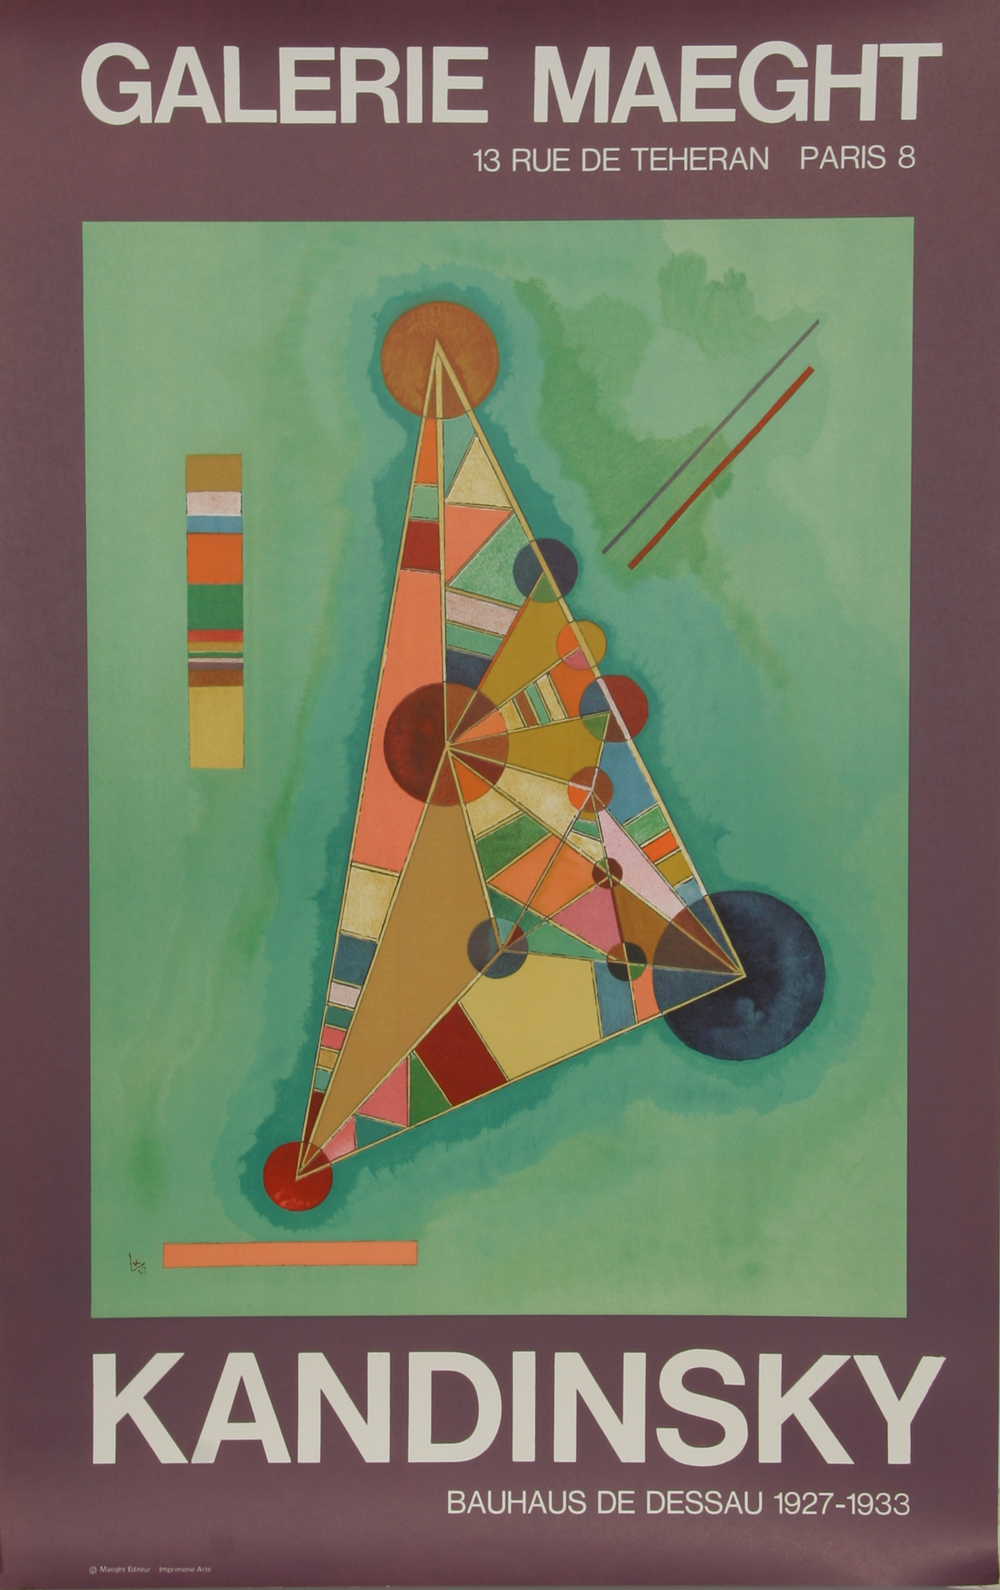 Kandinsky Exhibition At Galerie Maeght Poster Chairish